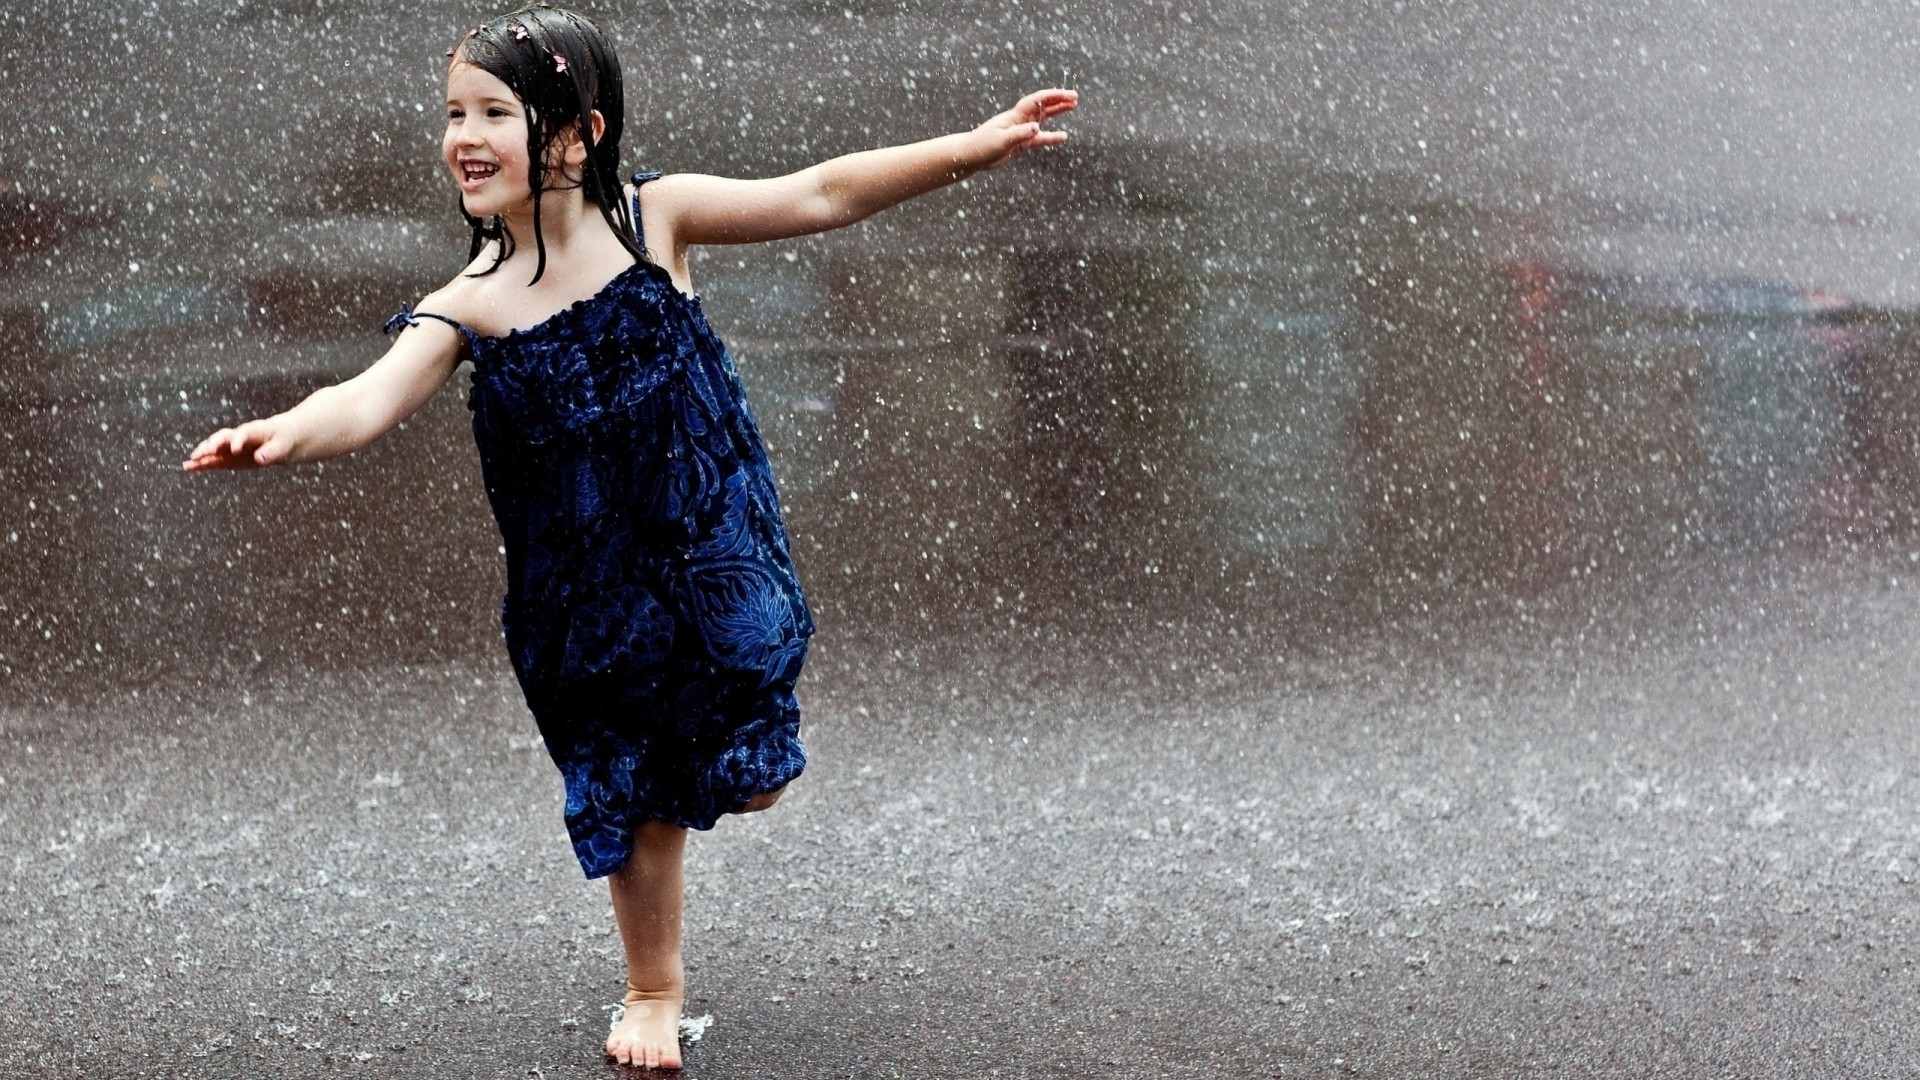 happiness wet girl rain blue dress brunette road falls barefoot child laughter